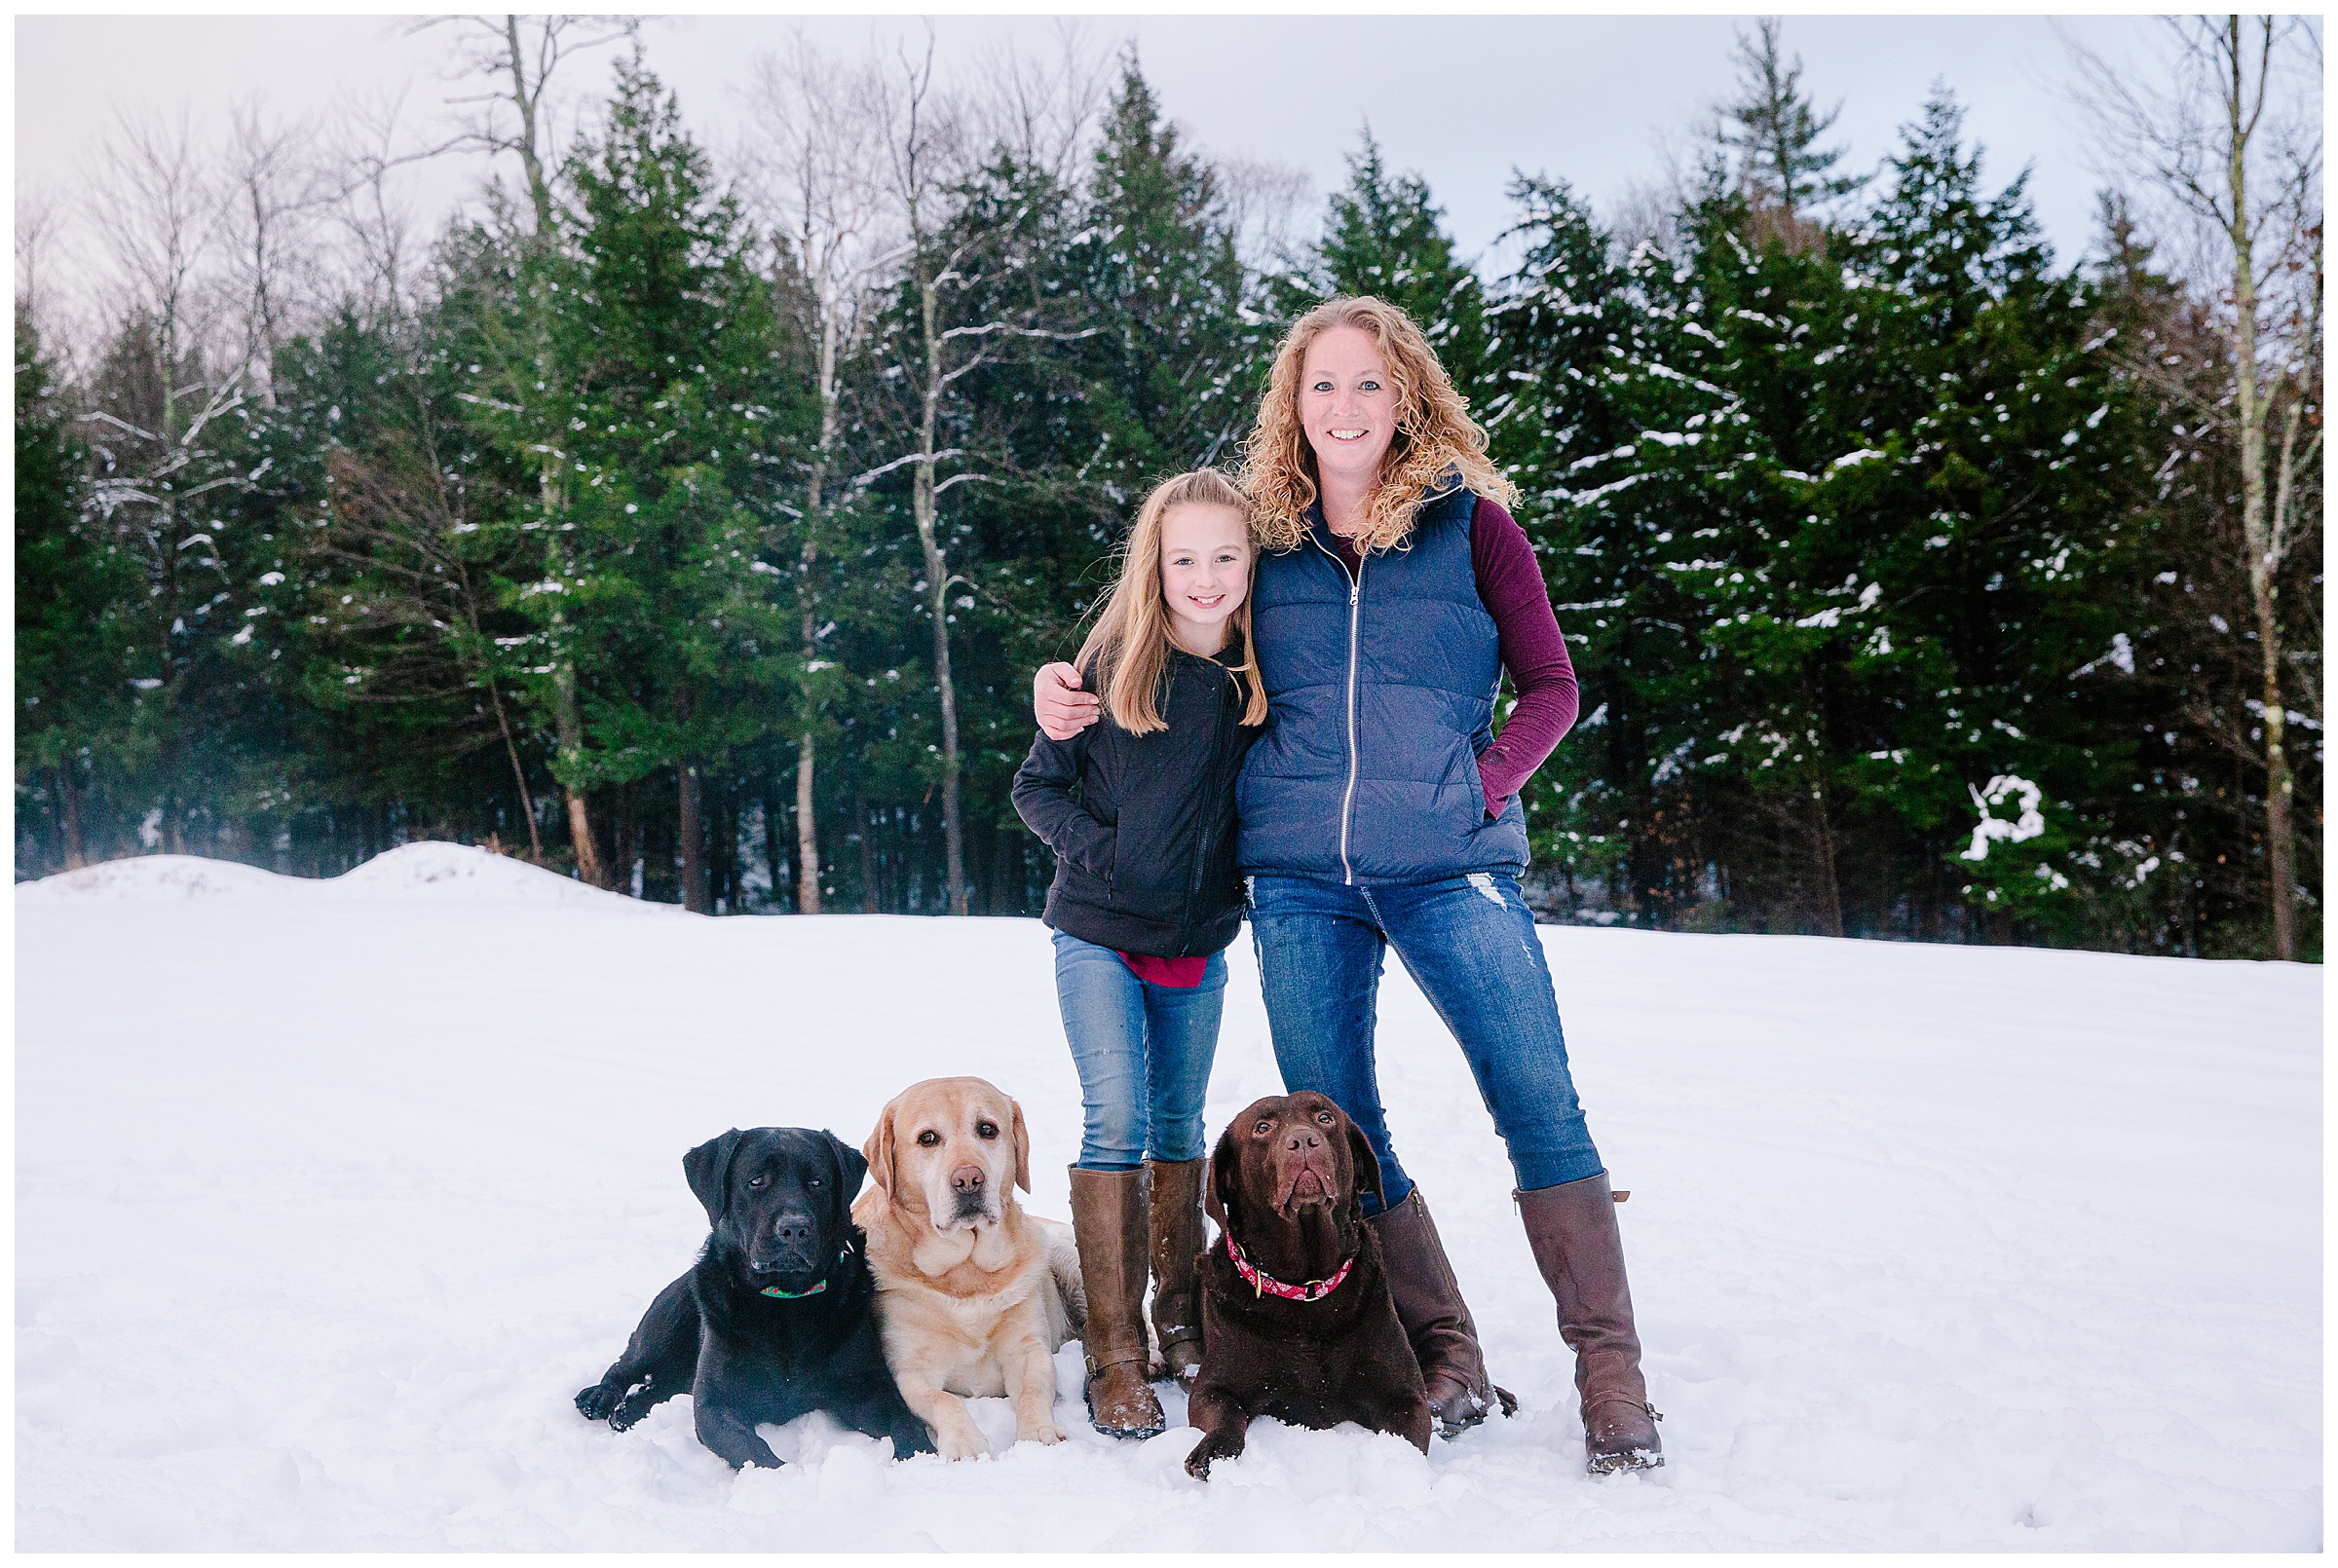 BLM,Brianna Morrissey,Brie Morrissey,Candid,Cold Springs,ColdSprings,ColdSprings Farm,ColdSprings Healing Paws,ColdSprings-Farm,Coldsprings Labradors,Family Photography,Family Portraits,Lifestyle,Lifestyle Family Photography,Melissa Saari,Natural Light,Nov,November,Outdoor Photography,Photo,Photographer,Photography,Saari,Saari Family,Snow,Winter,Winter portraits,www.blmphoto.com/contact,©BLM Photography 2018,